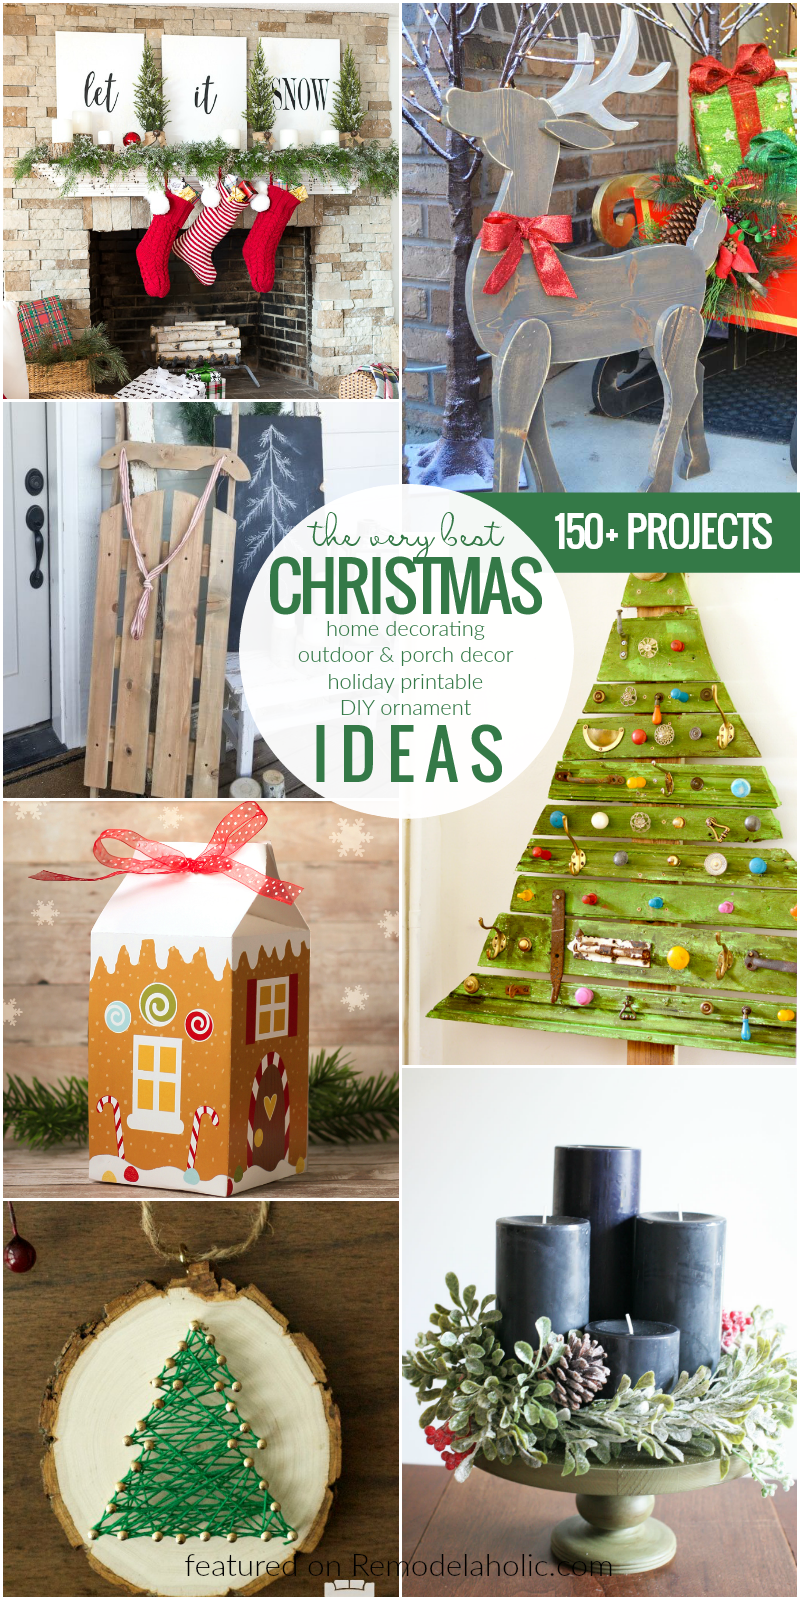 Remodelaholic | 150+ Christmas Ideas: Decorations ...